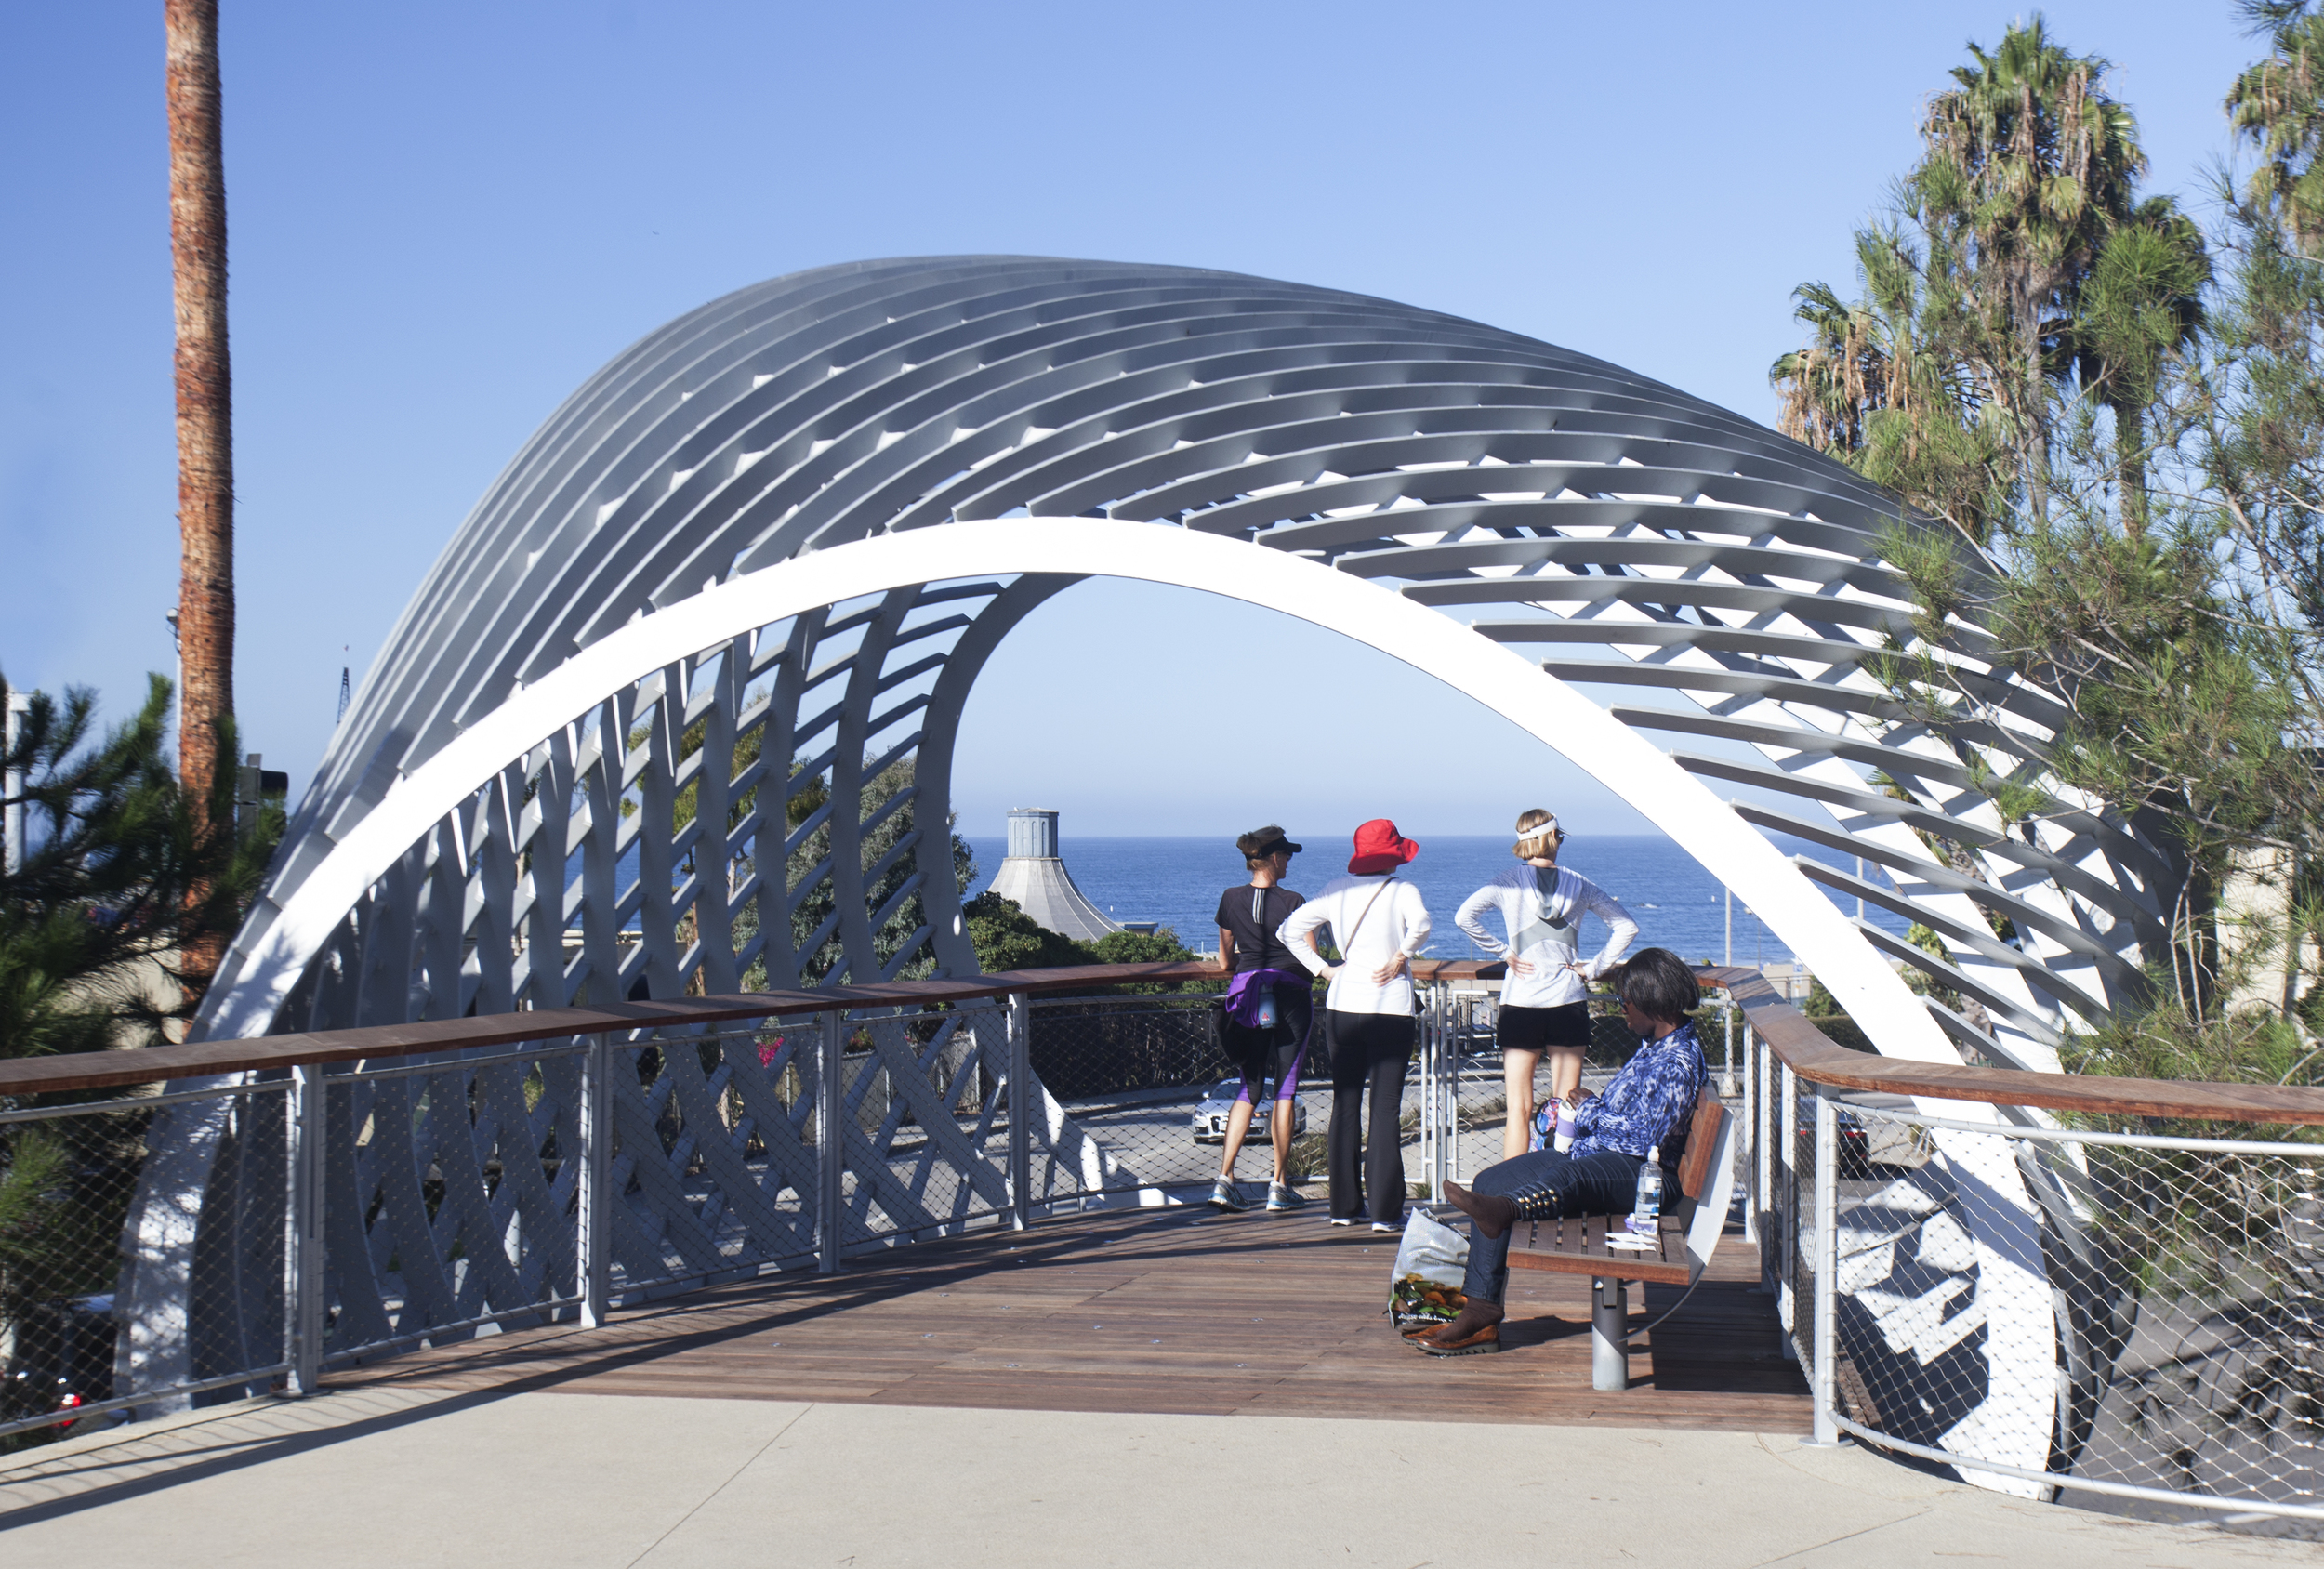 Tongva Park Overlook